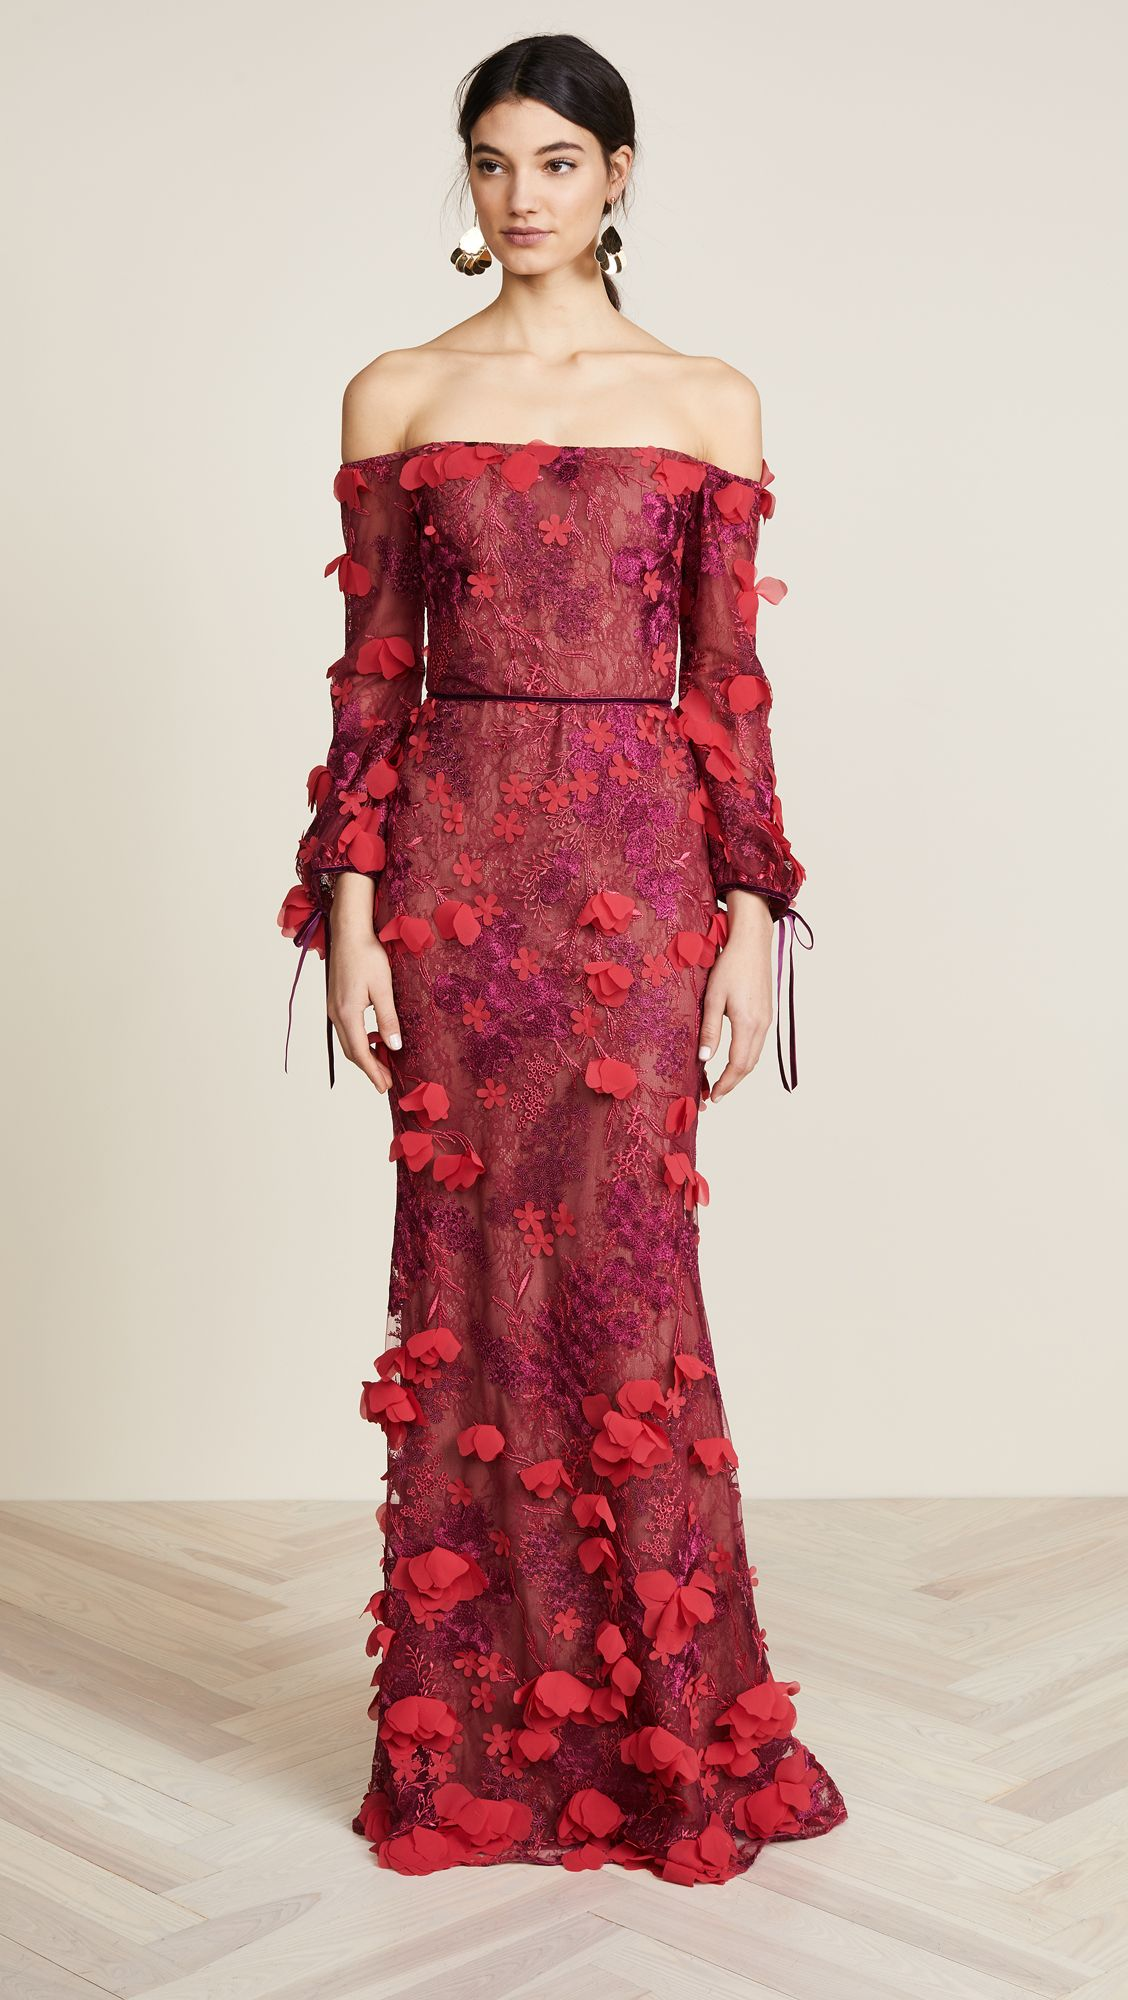 Batik dress for wedding party  Off Shoulder Embroidered Gown  Marchesa Gowns and Shoulder